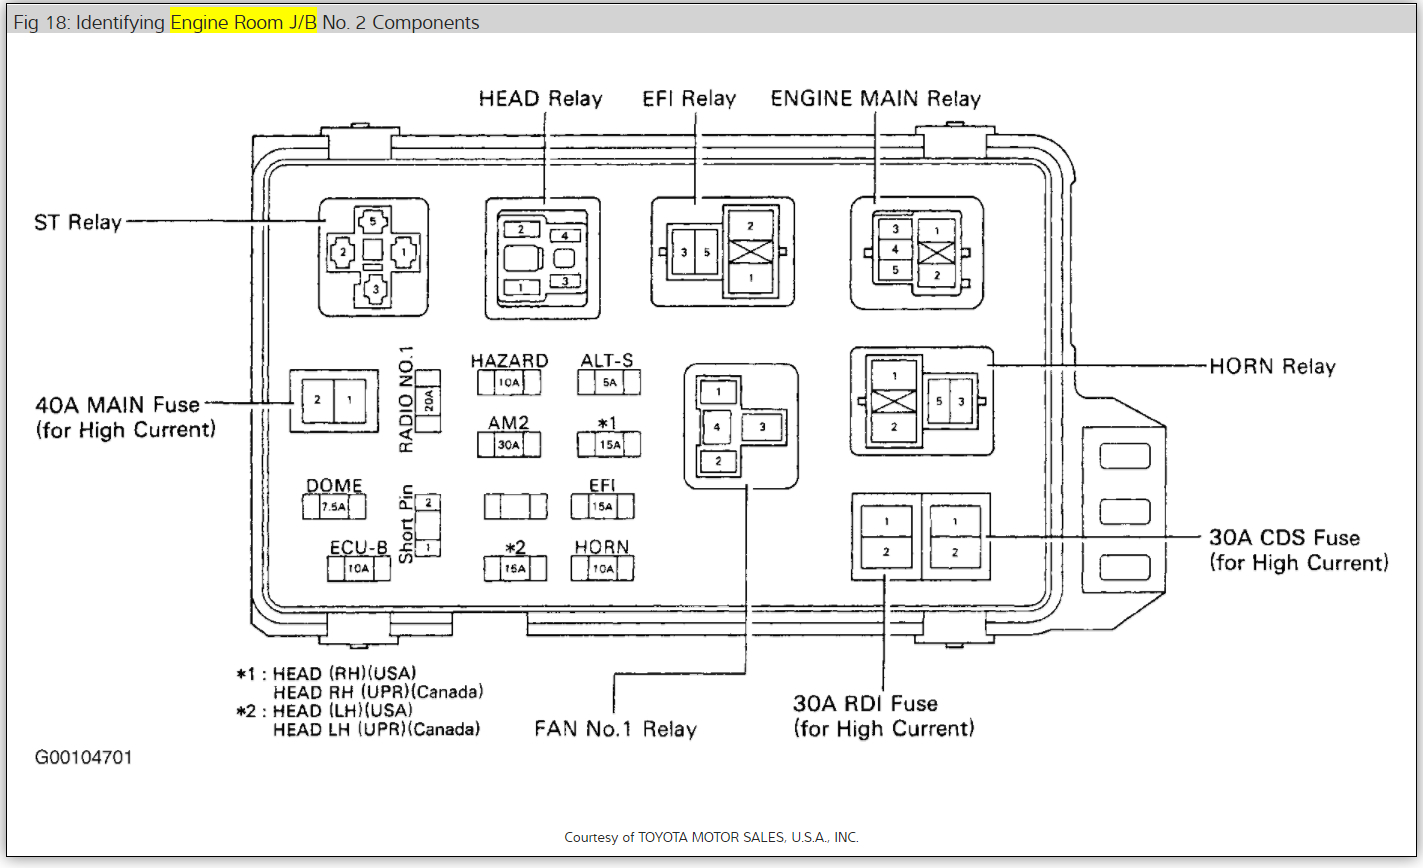 1998 camry fuse diagram wiring diagram will be a thing u2022 rh  exploreandmore co uk 1992 Camry Fuel Pump Relay Schematic 1999 toyota camry  xle fuse box ...